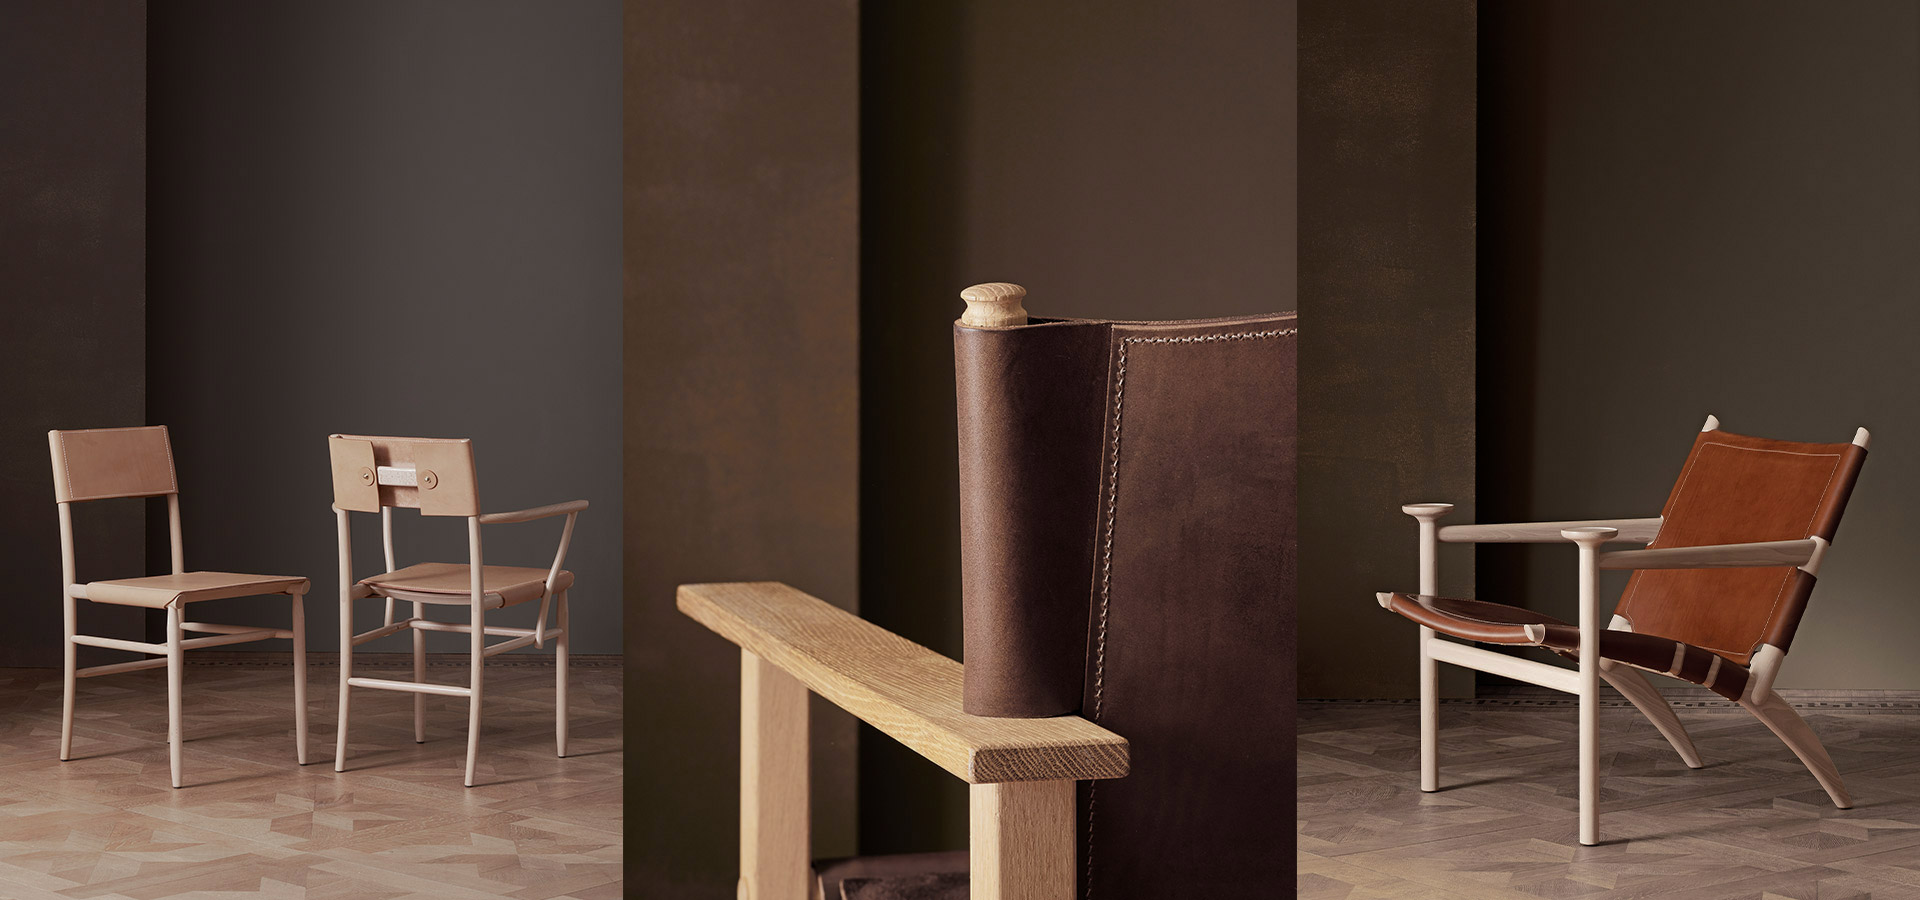 Garsnas is a furniture brand that connects past & future with handcrafted high tech pieces.